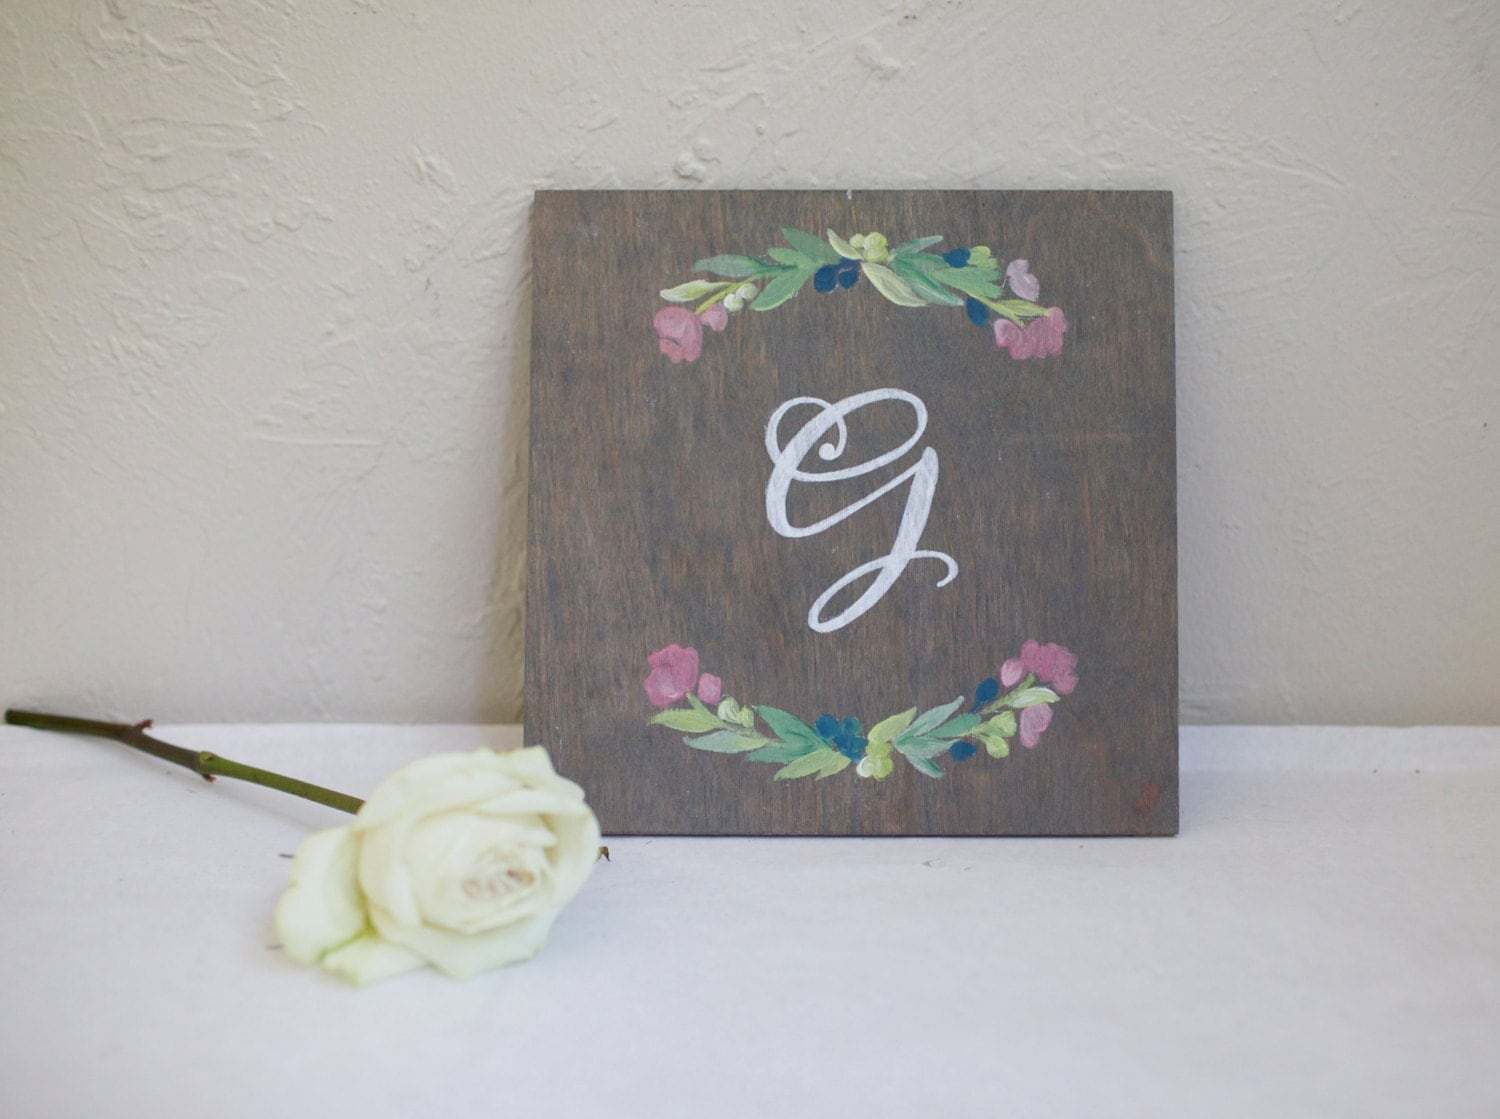 Tulips Monogram handpainted on Stained Plywood. Floral garland. Custom Bridesmaid Gift. Personalized. Wedding. Housewarming. Anniversary